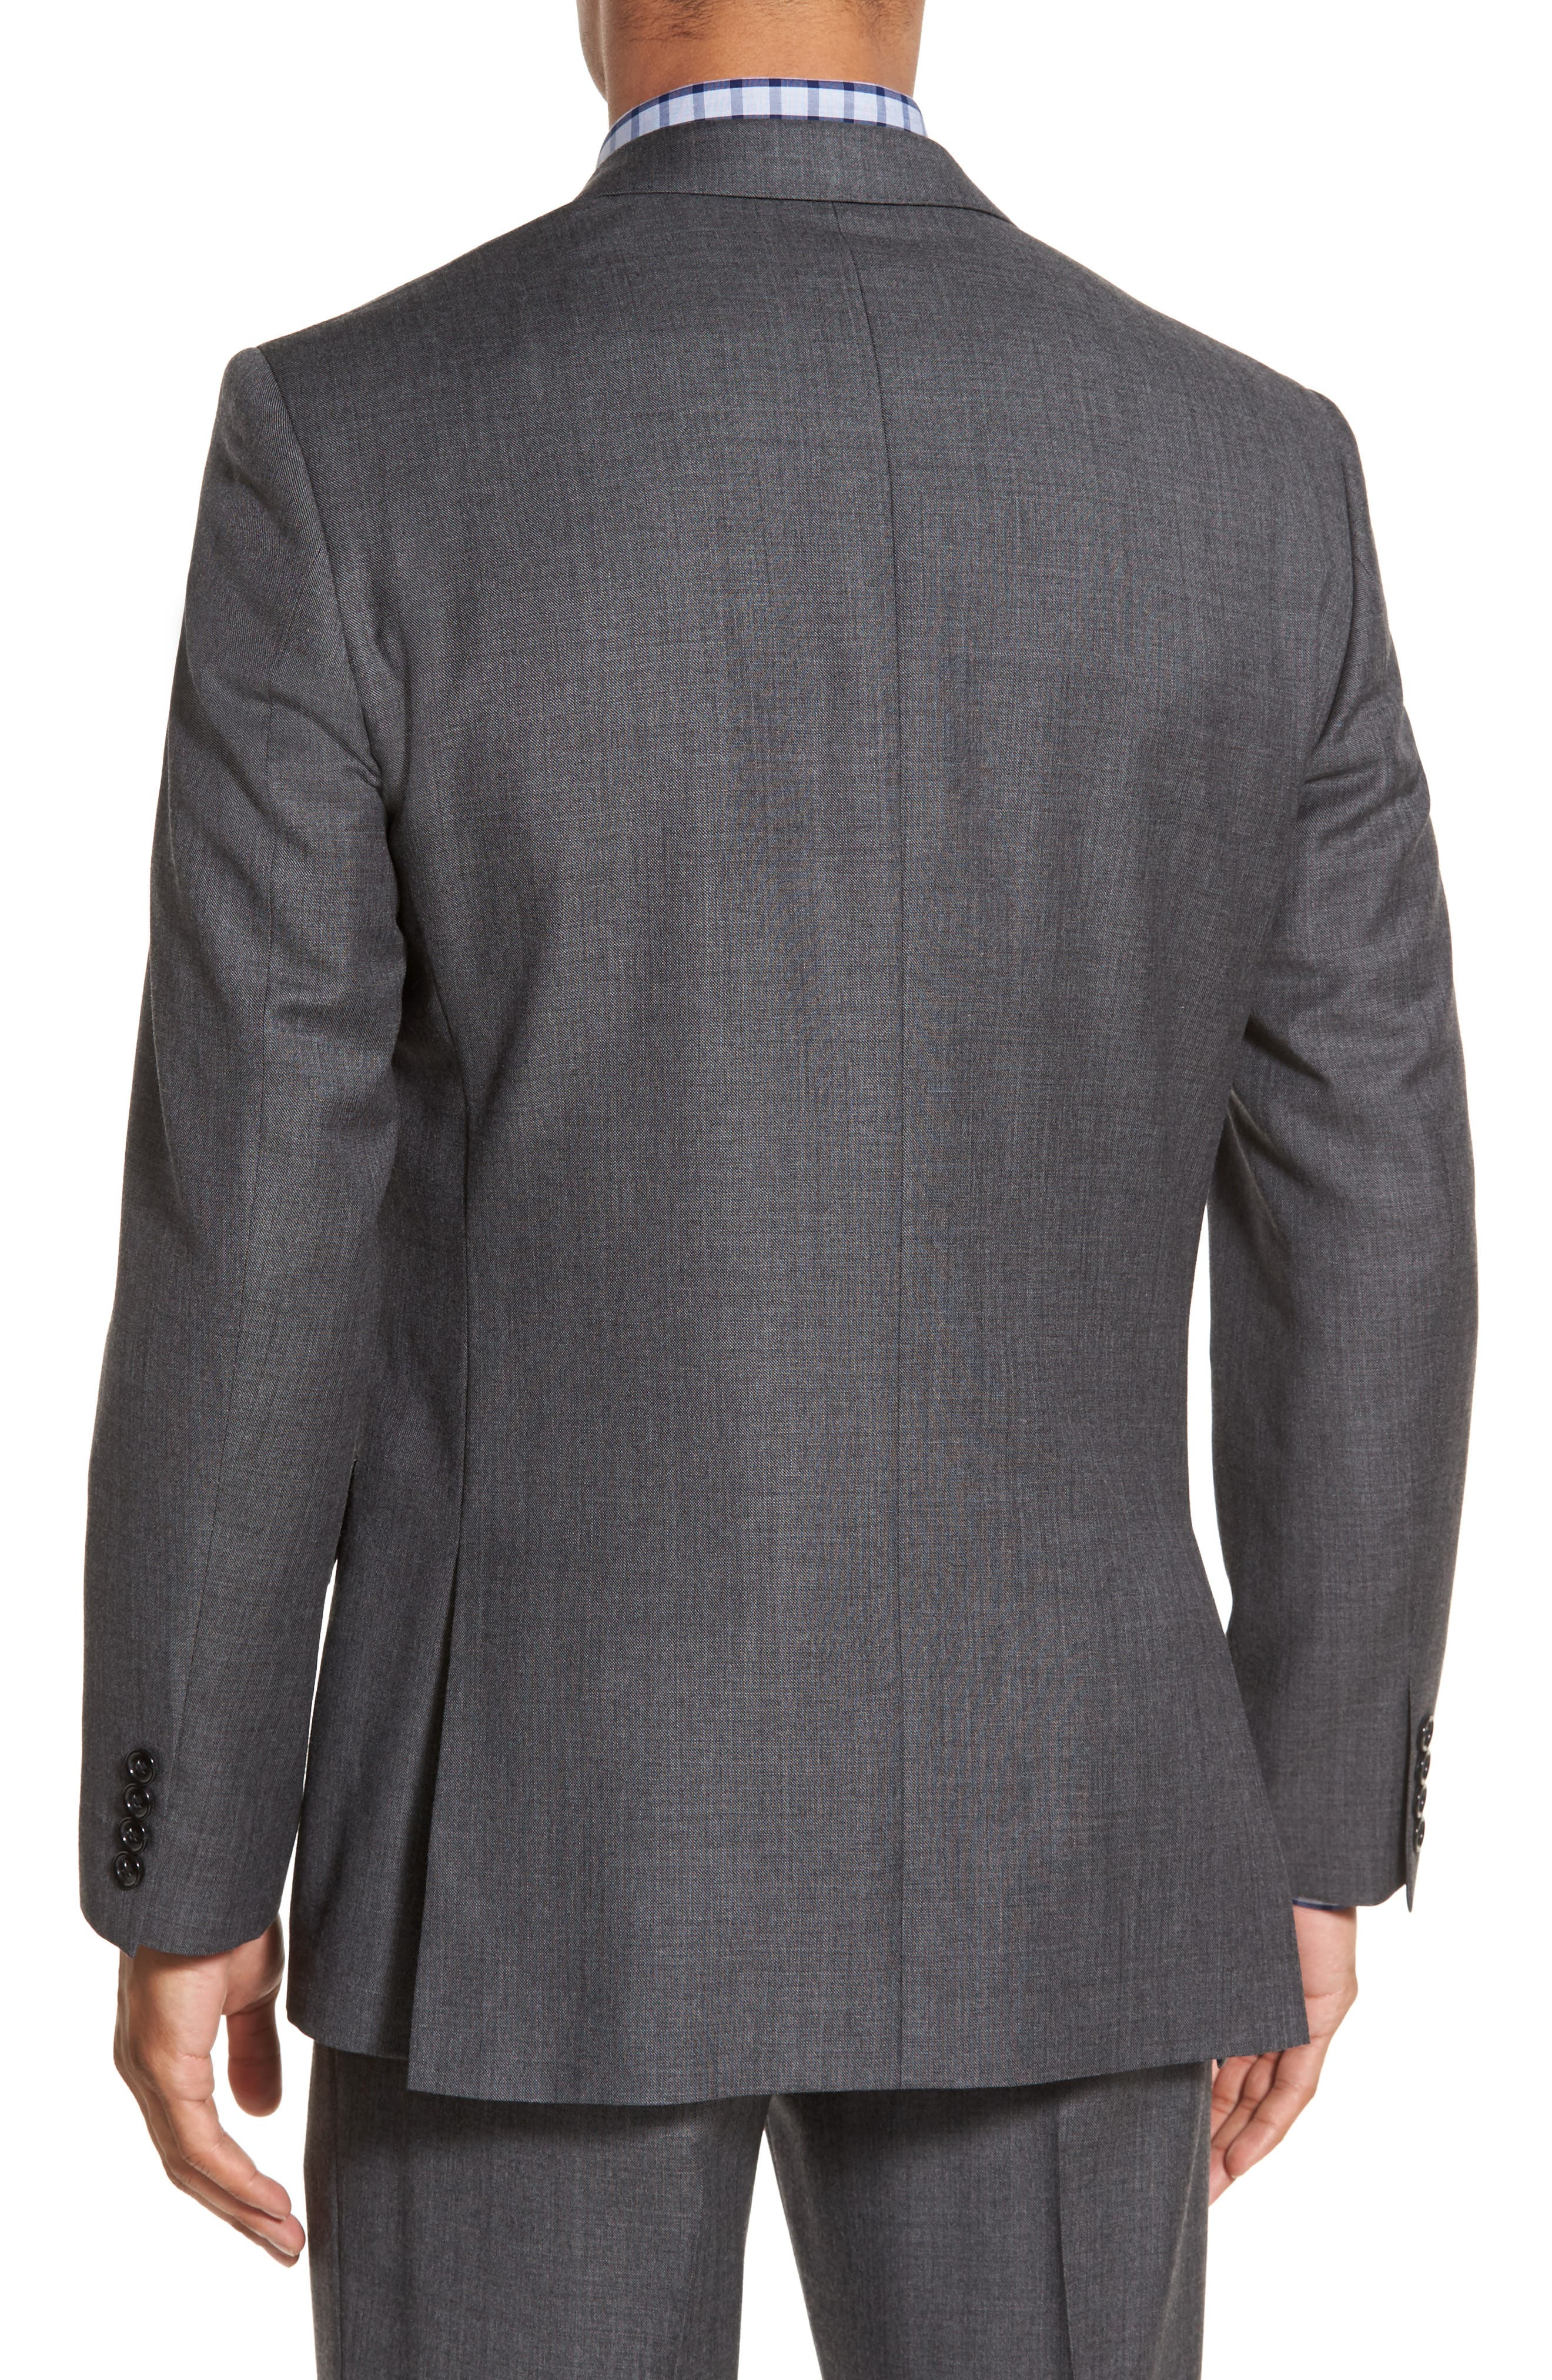 J.Crew Ludlow Trim Fit Solid Wool Sport Coat,                             Alternate thumbnail 2, color,                             Charcoal